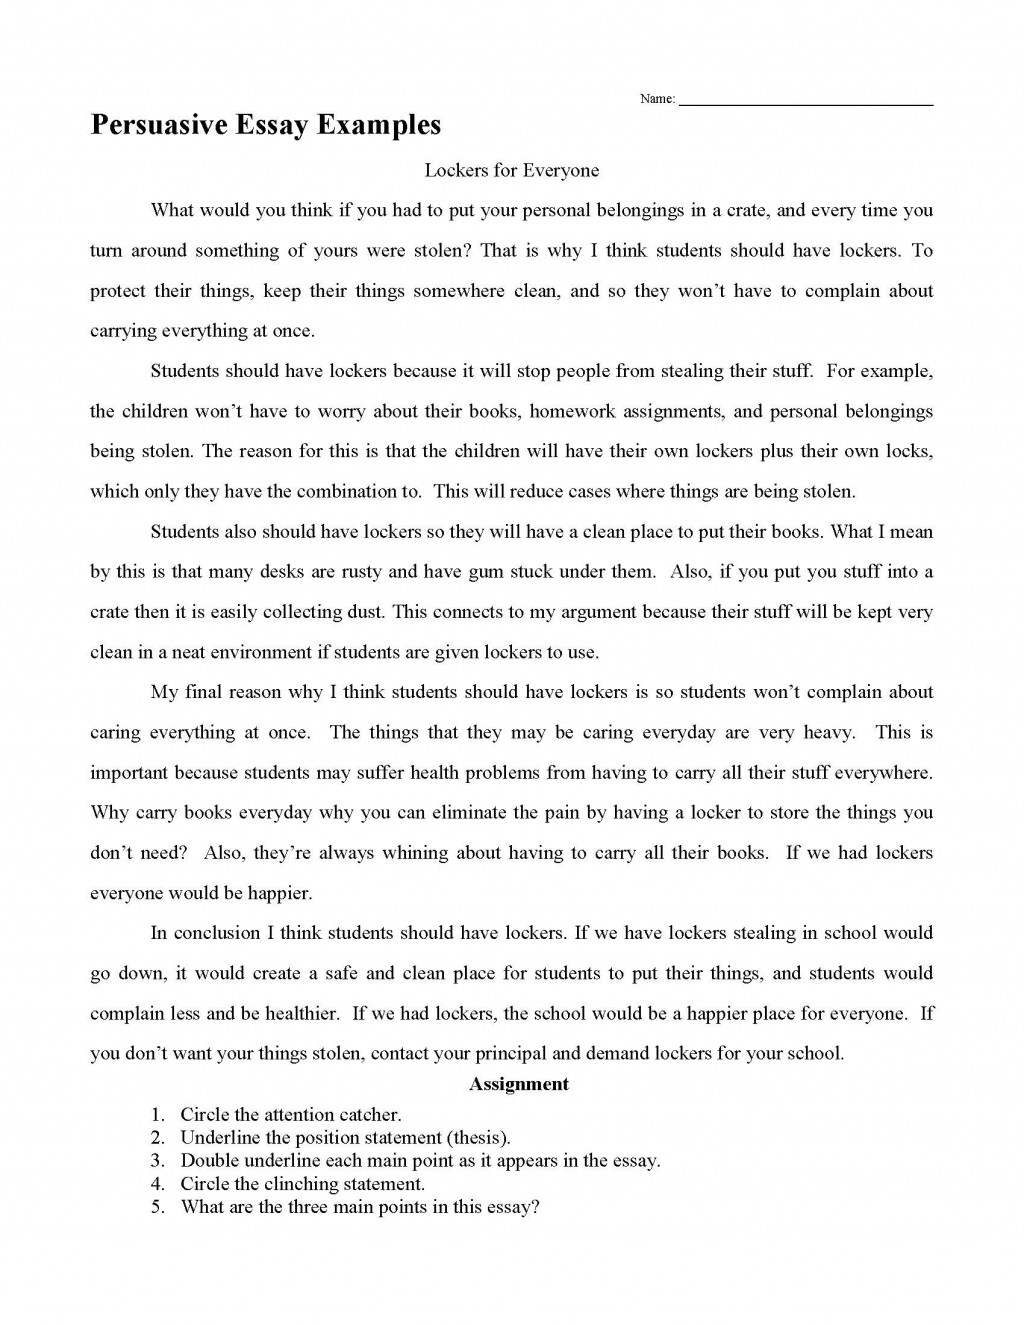 014 Research Paper Persuasive Essay Examples Introduction Of Awesome A Paragraph For Apa Large